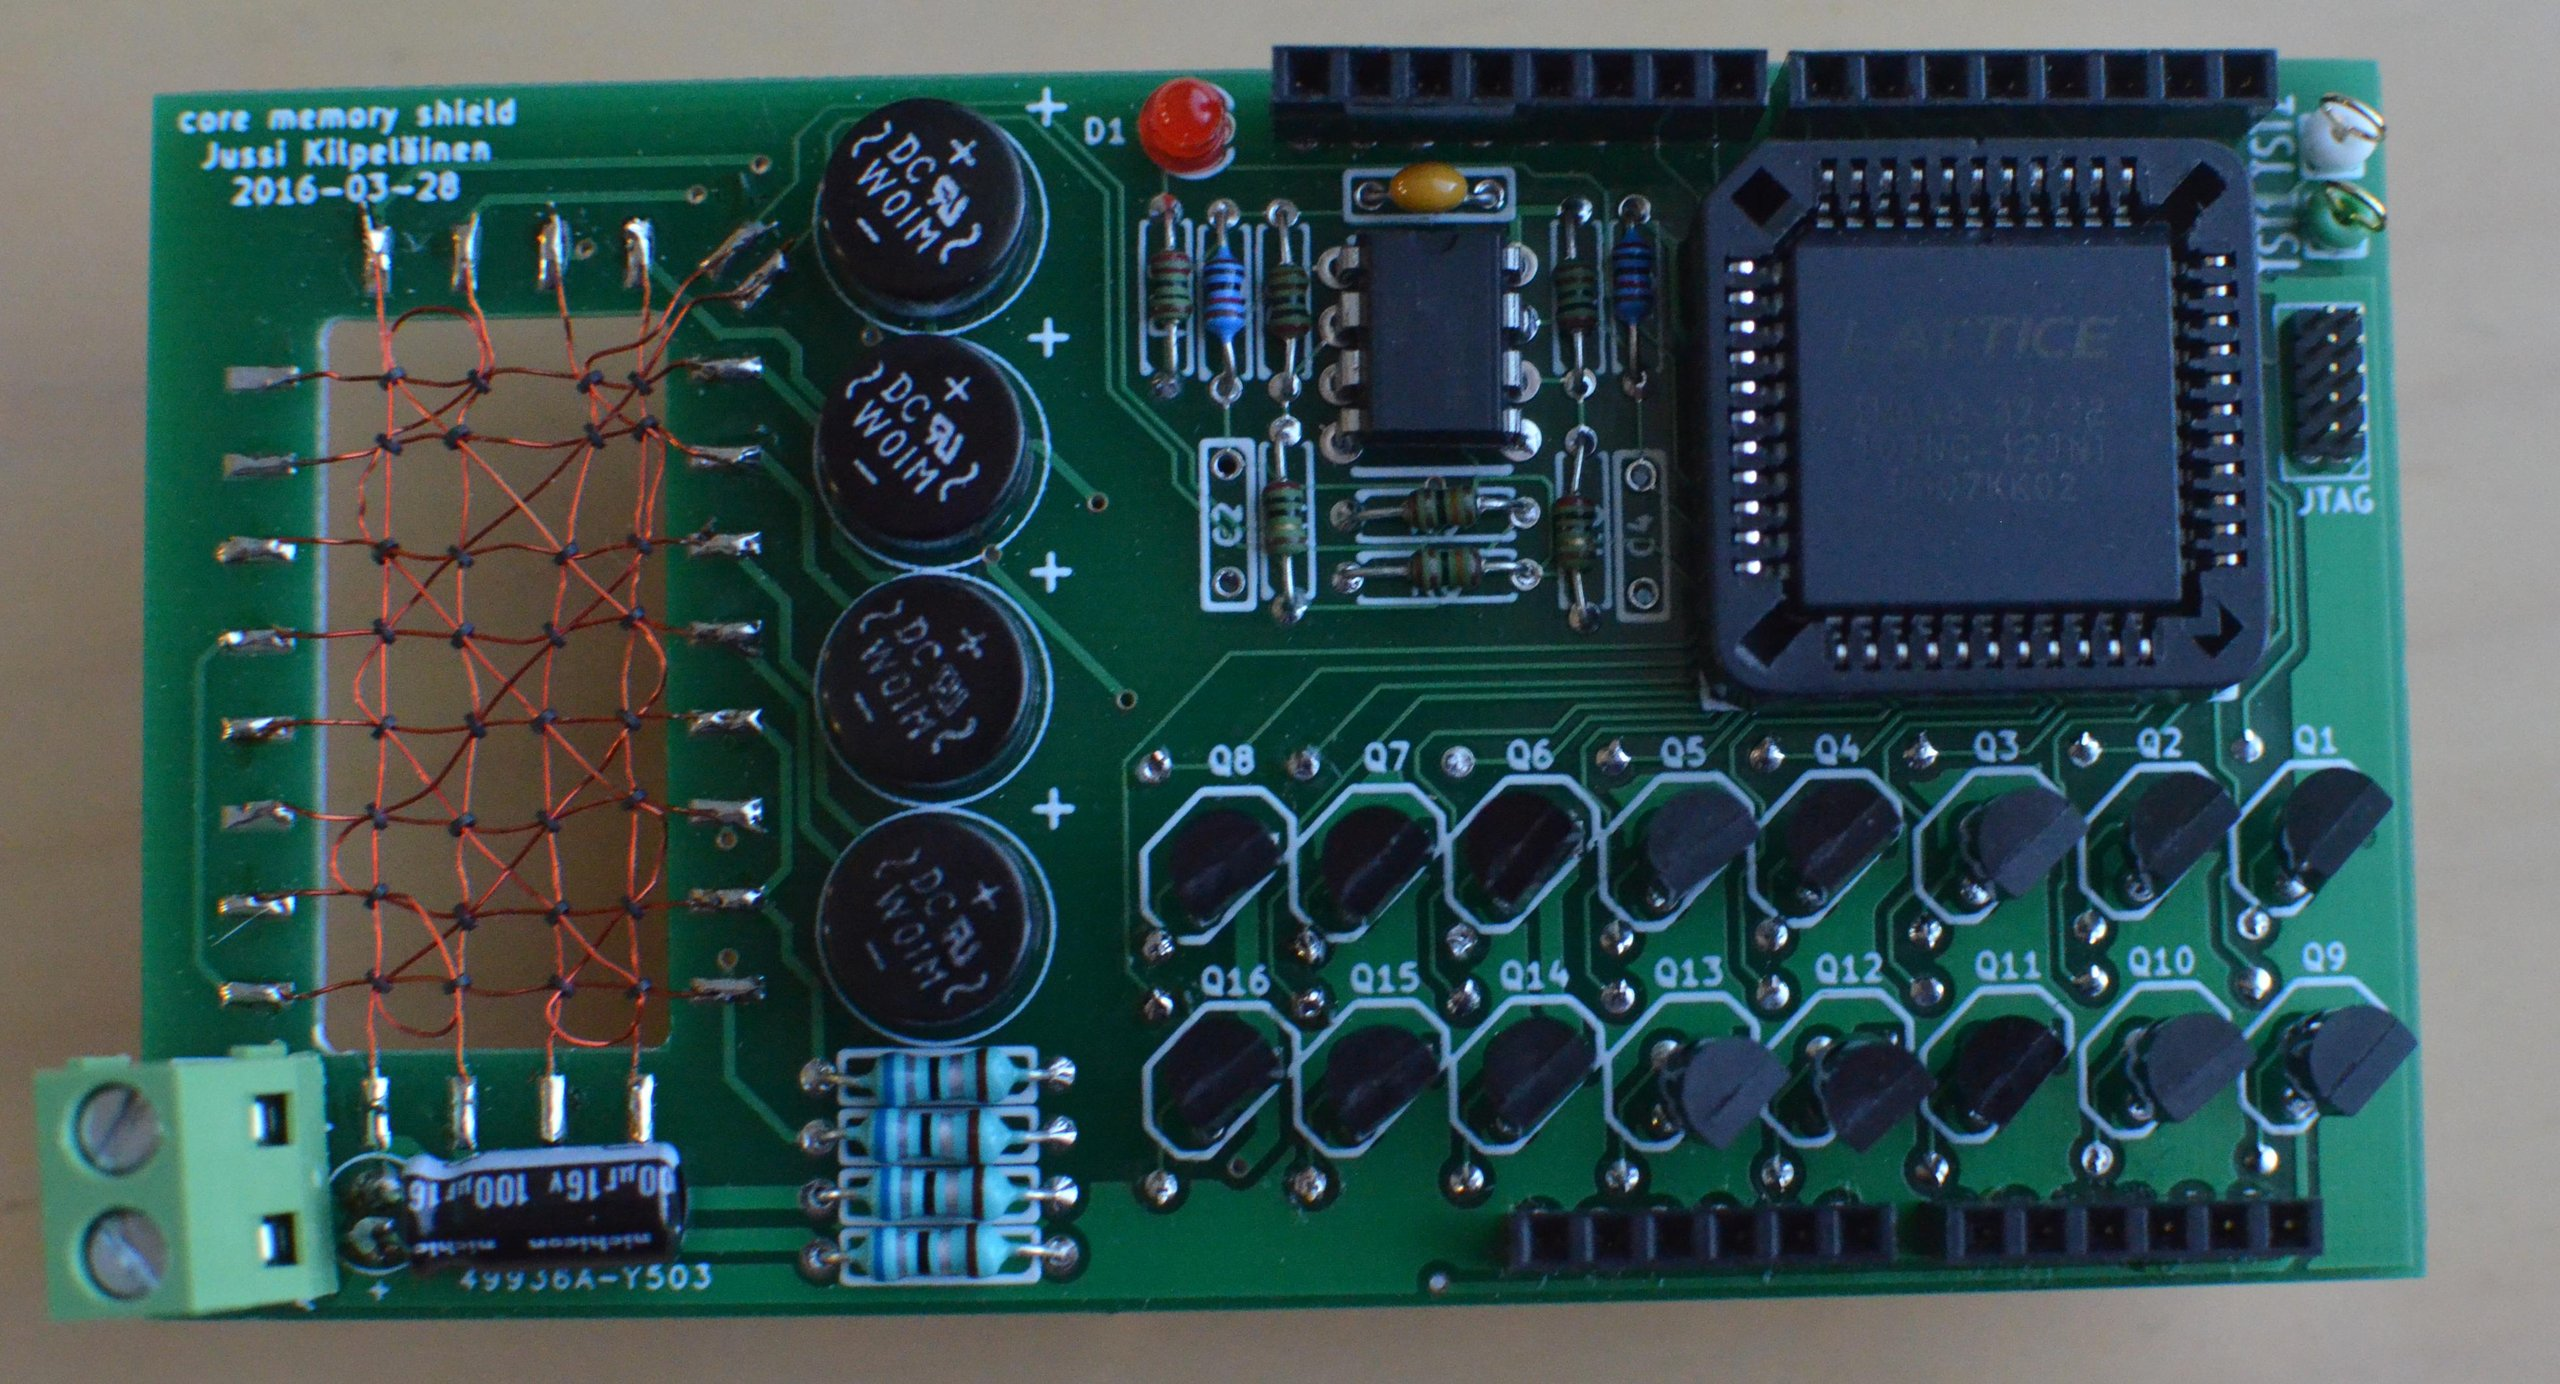 Core memory shield for arduino from kilpelaj on tindie